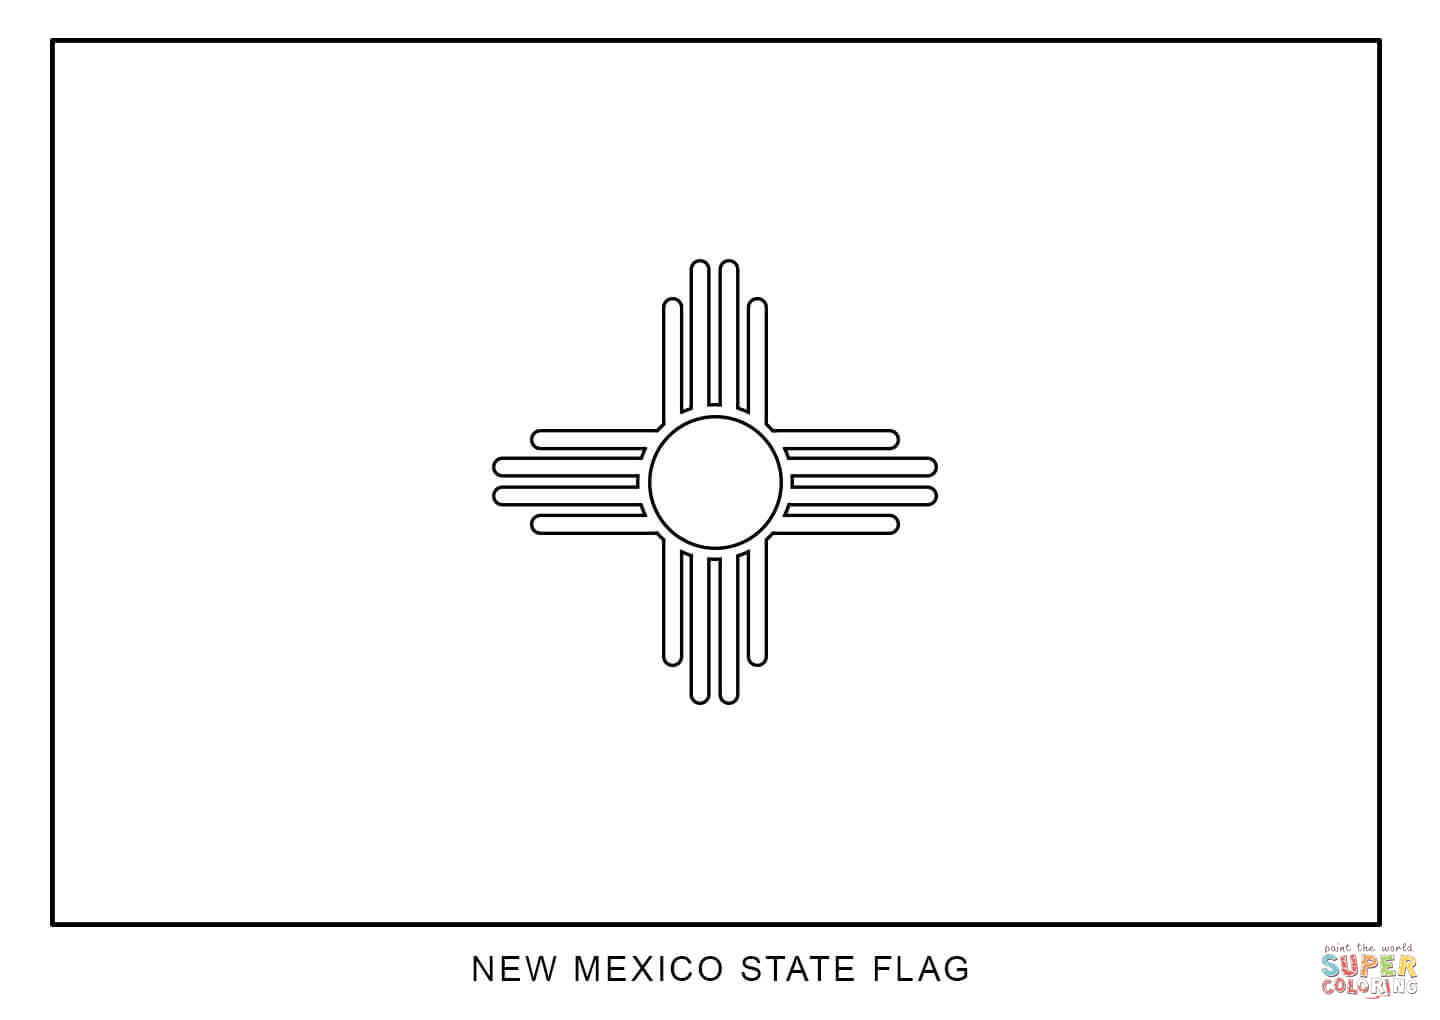 Black Bear clipart new mexico state Of the Flag Flag of